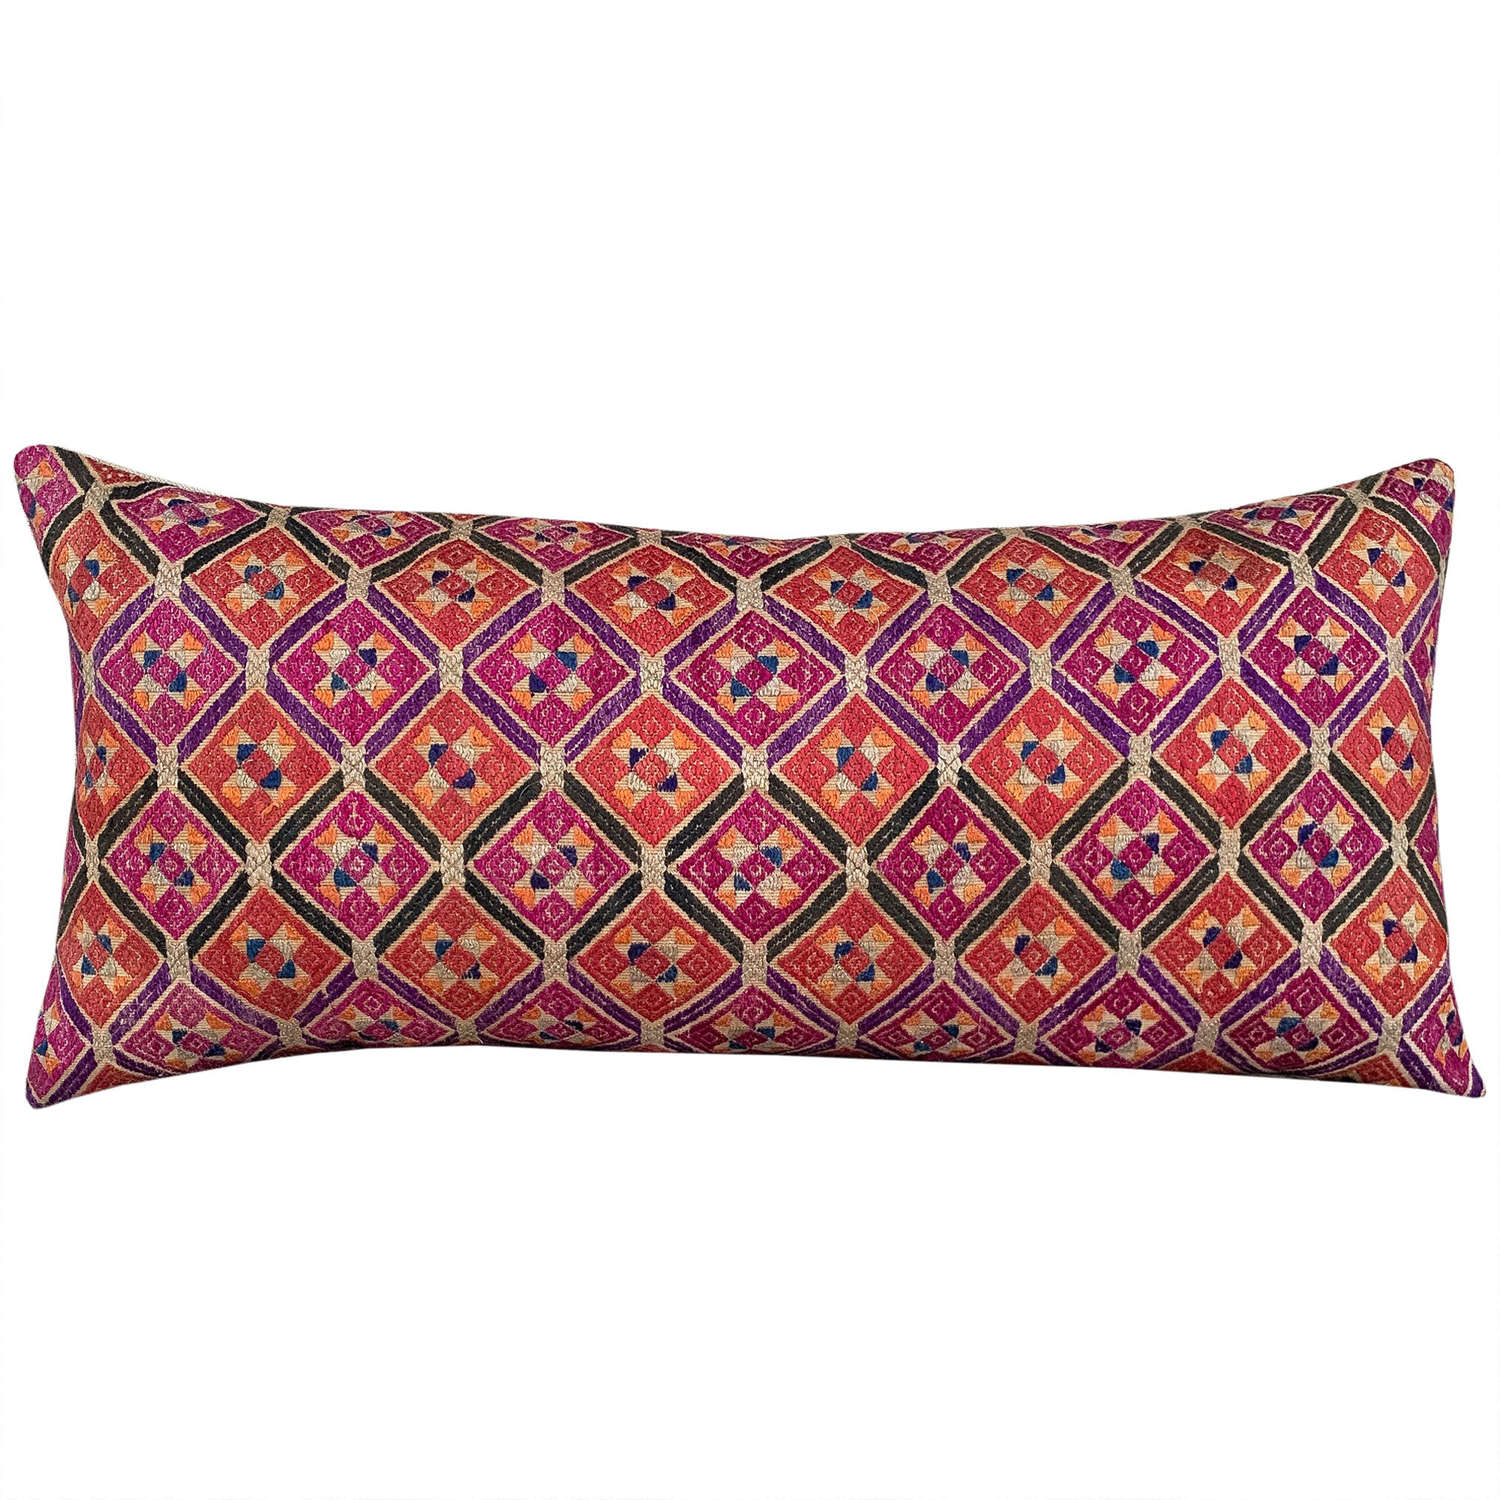 Coral and pink Zhuang cushions